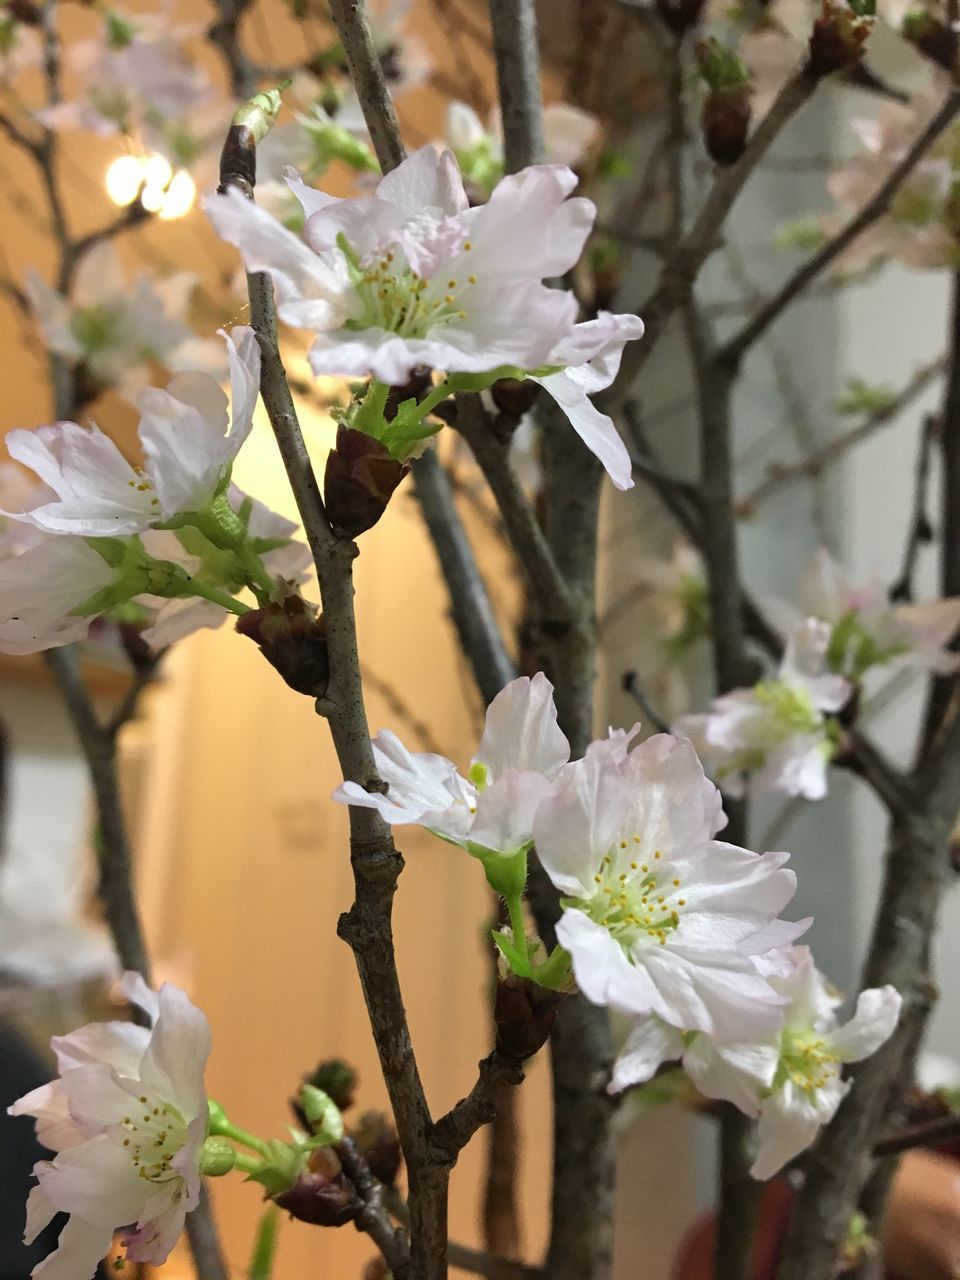 flowering plant, flower, plant, beauty in nature, vulnerability, fragility, growth, freshness, petal, white color, close-up, focus on foreground, nature, no people, tree, flower head, inflorescence, blossom, day, springtime, outdoors, pollen, cherry blossom, spring